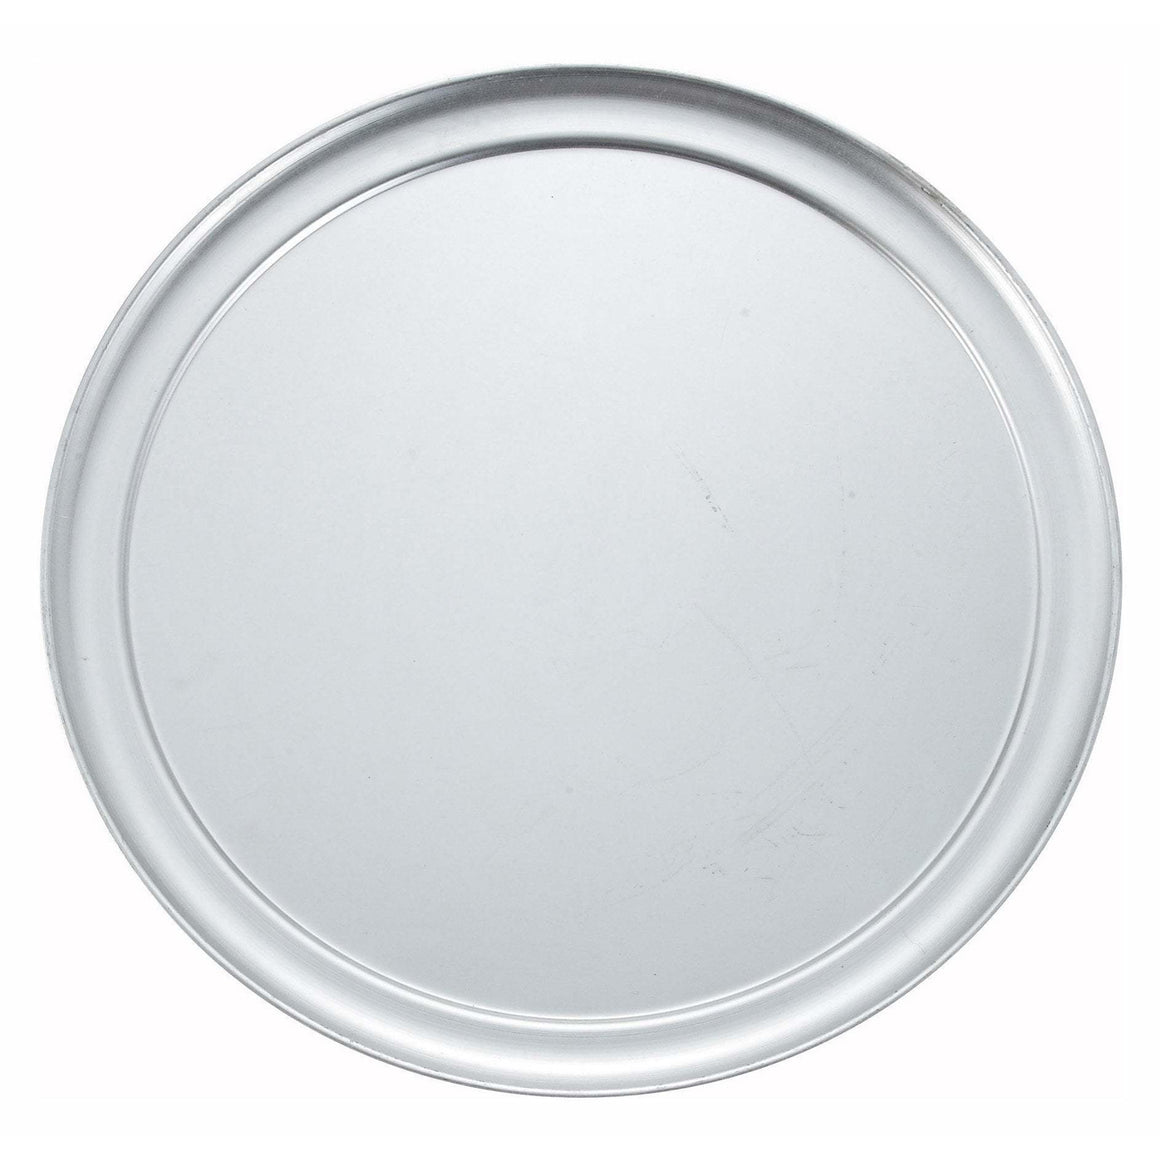 "Winco - APZT-16 - 16"" Wide Rim Pizza Tray, Aluminum - Pizza Supplies"